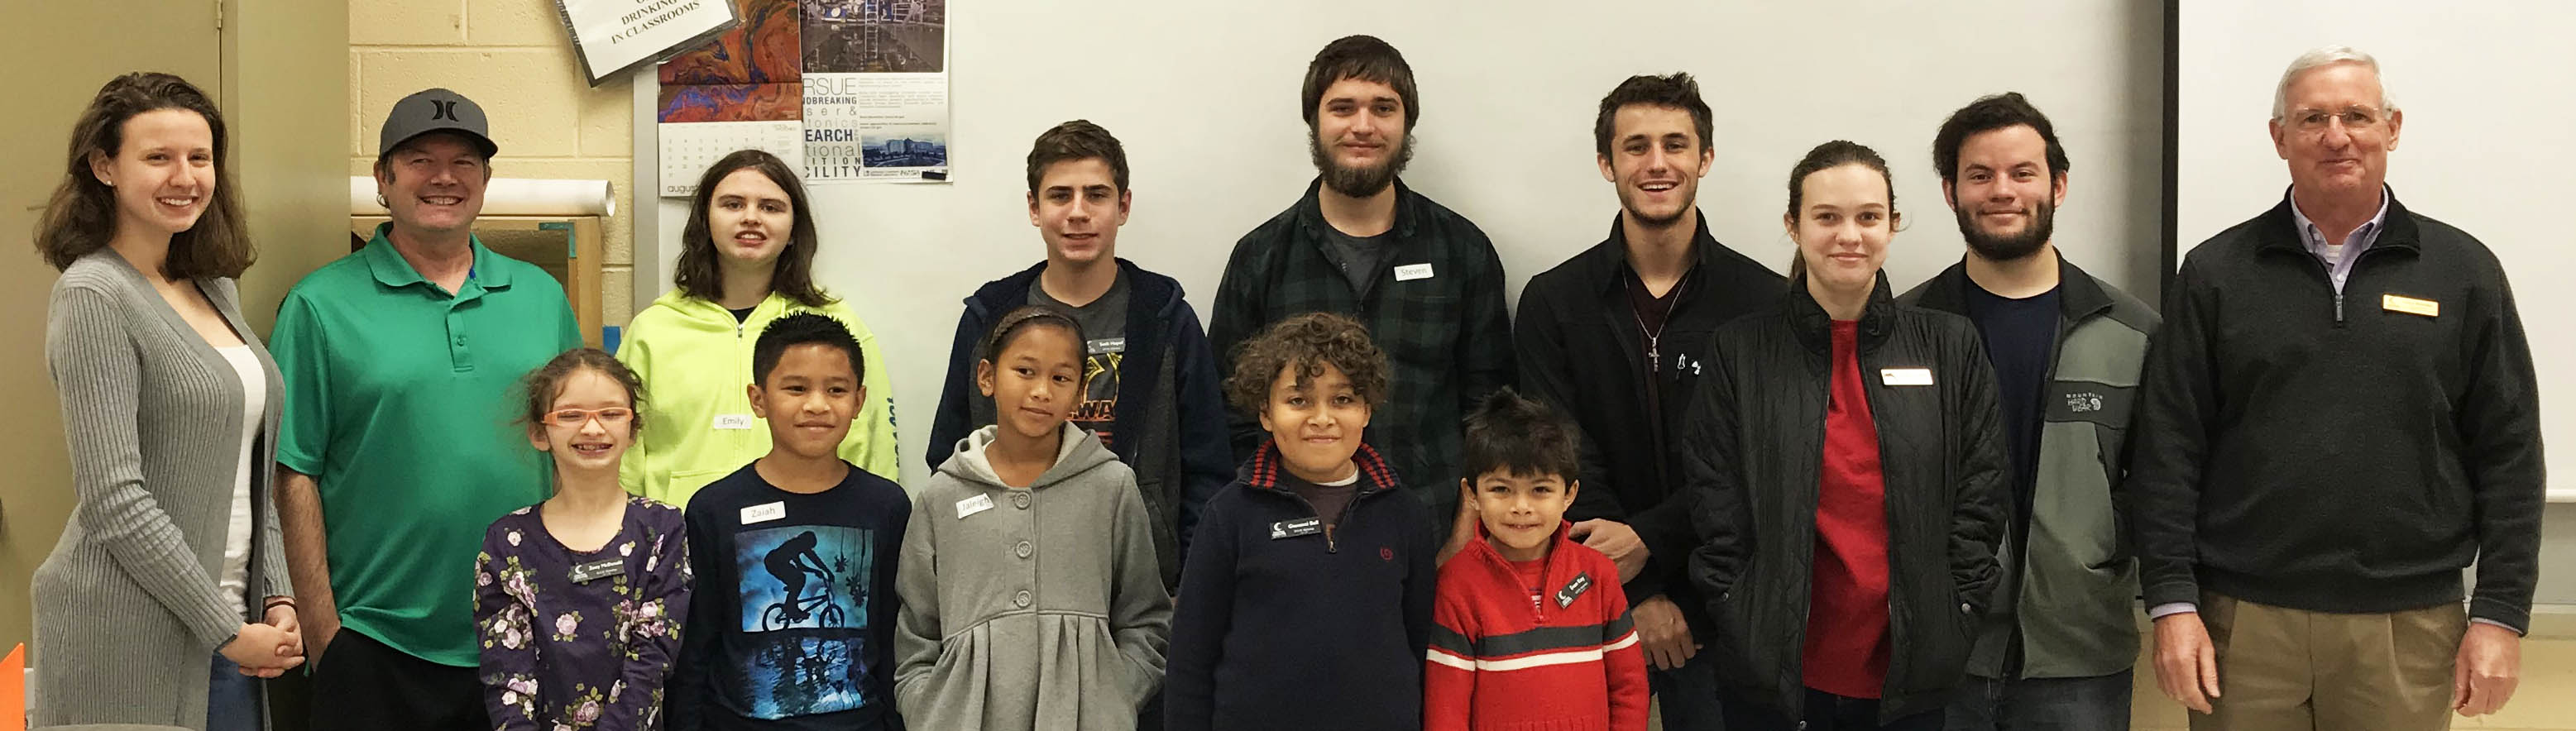 Read the full story, CCCC hosts youth lasers workshop